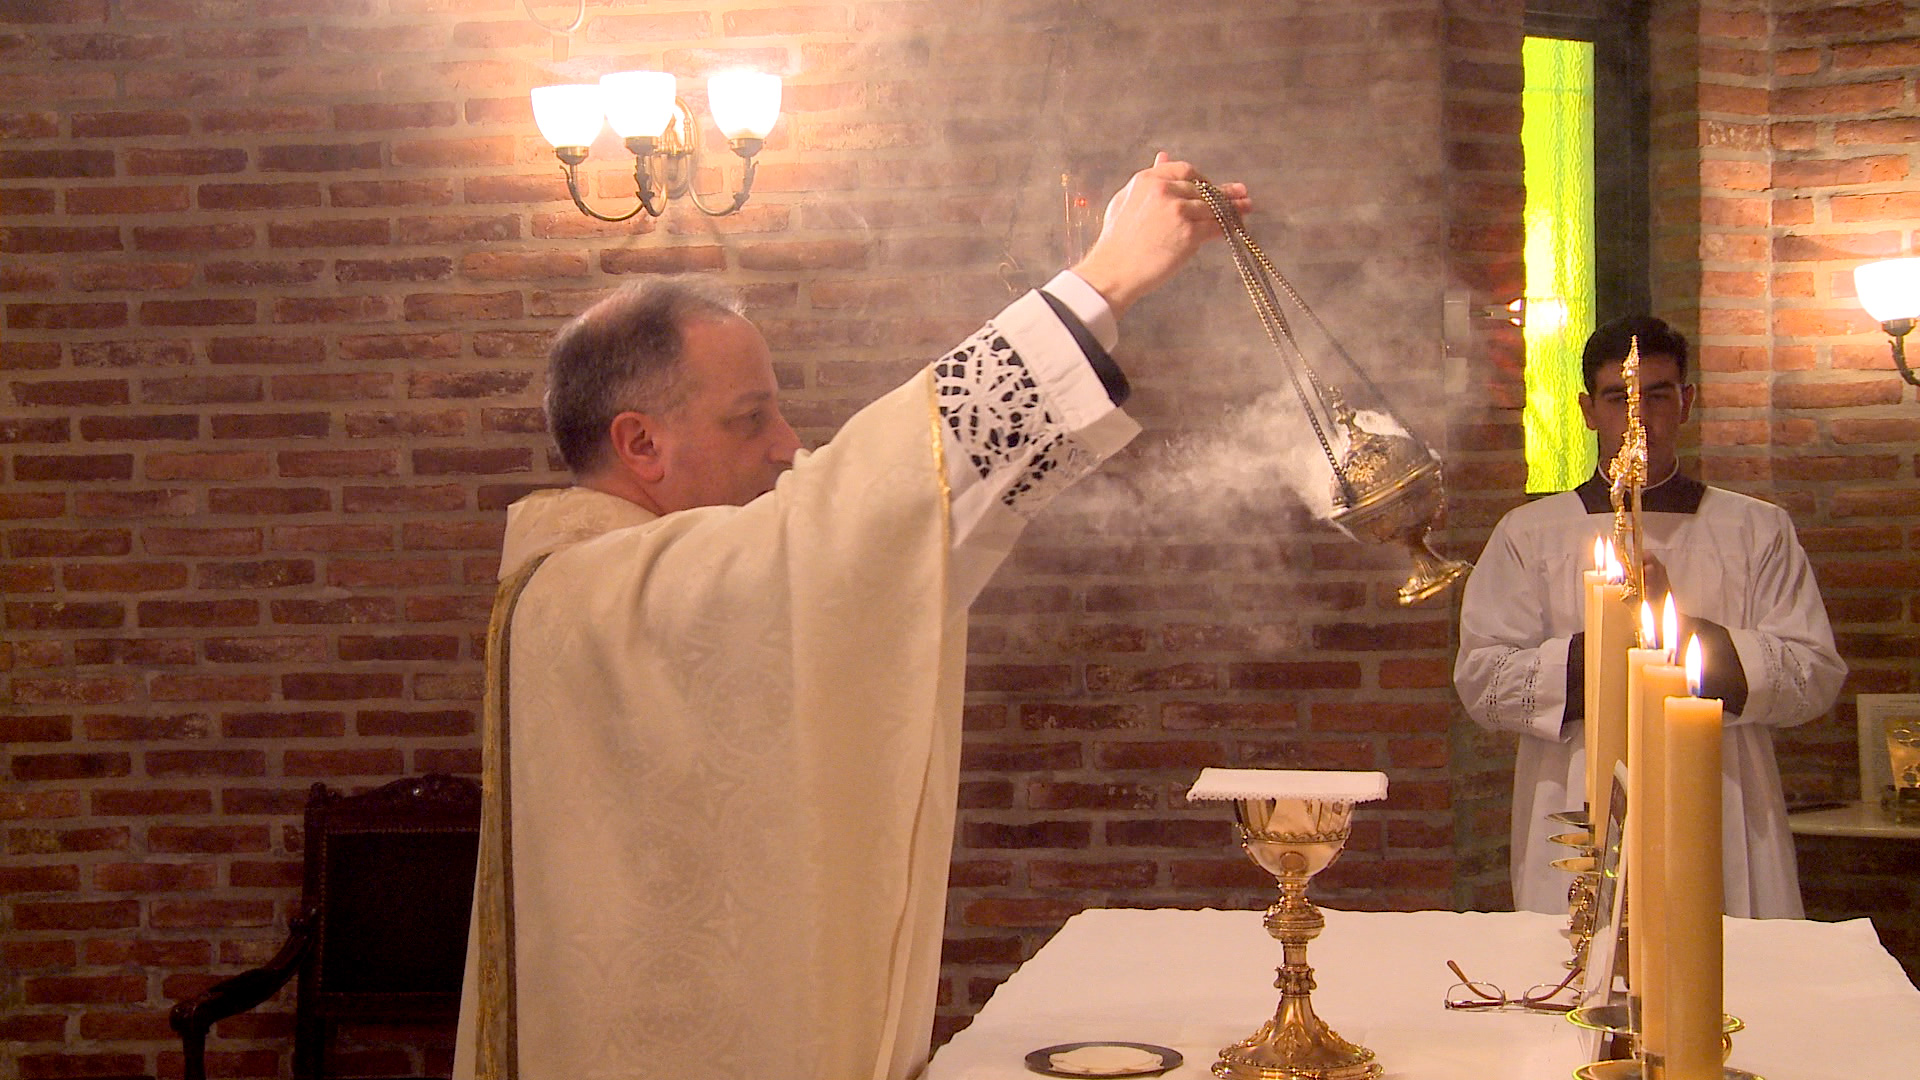 Yannuzzi-and-incense.jpg